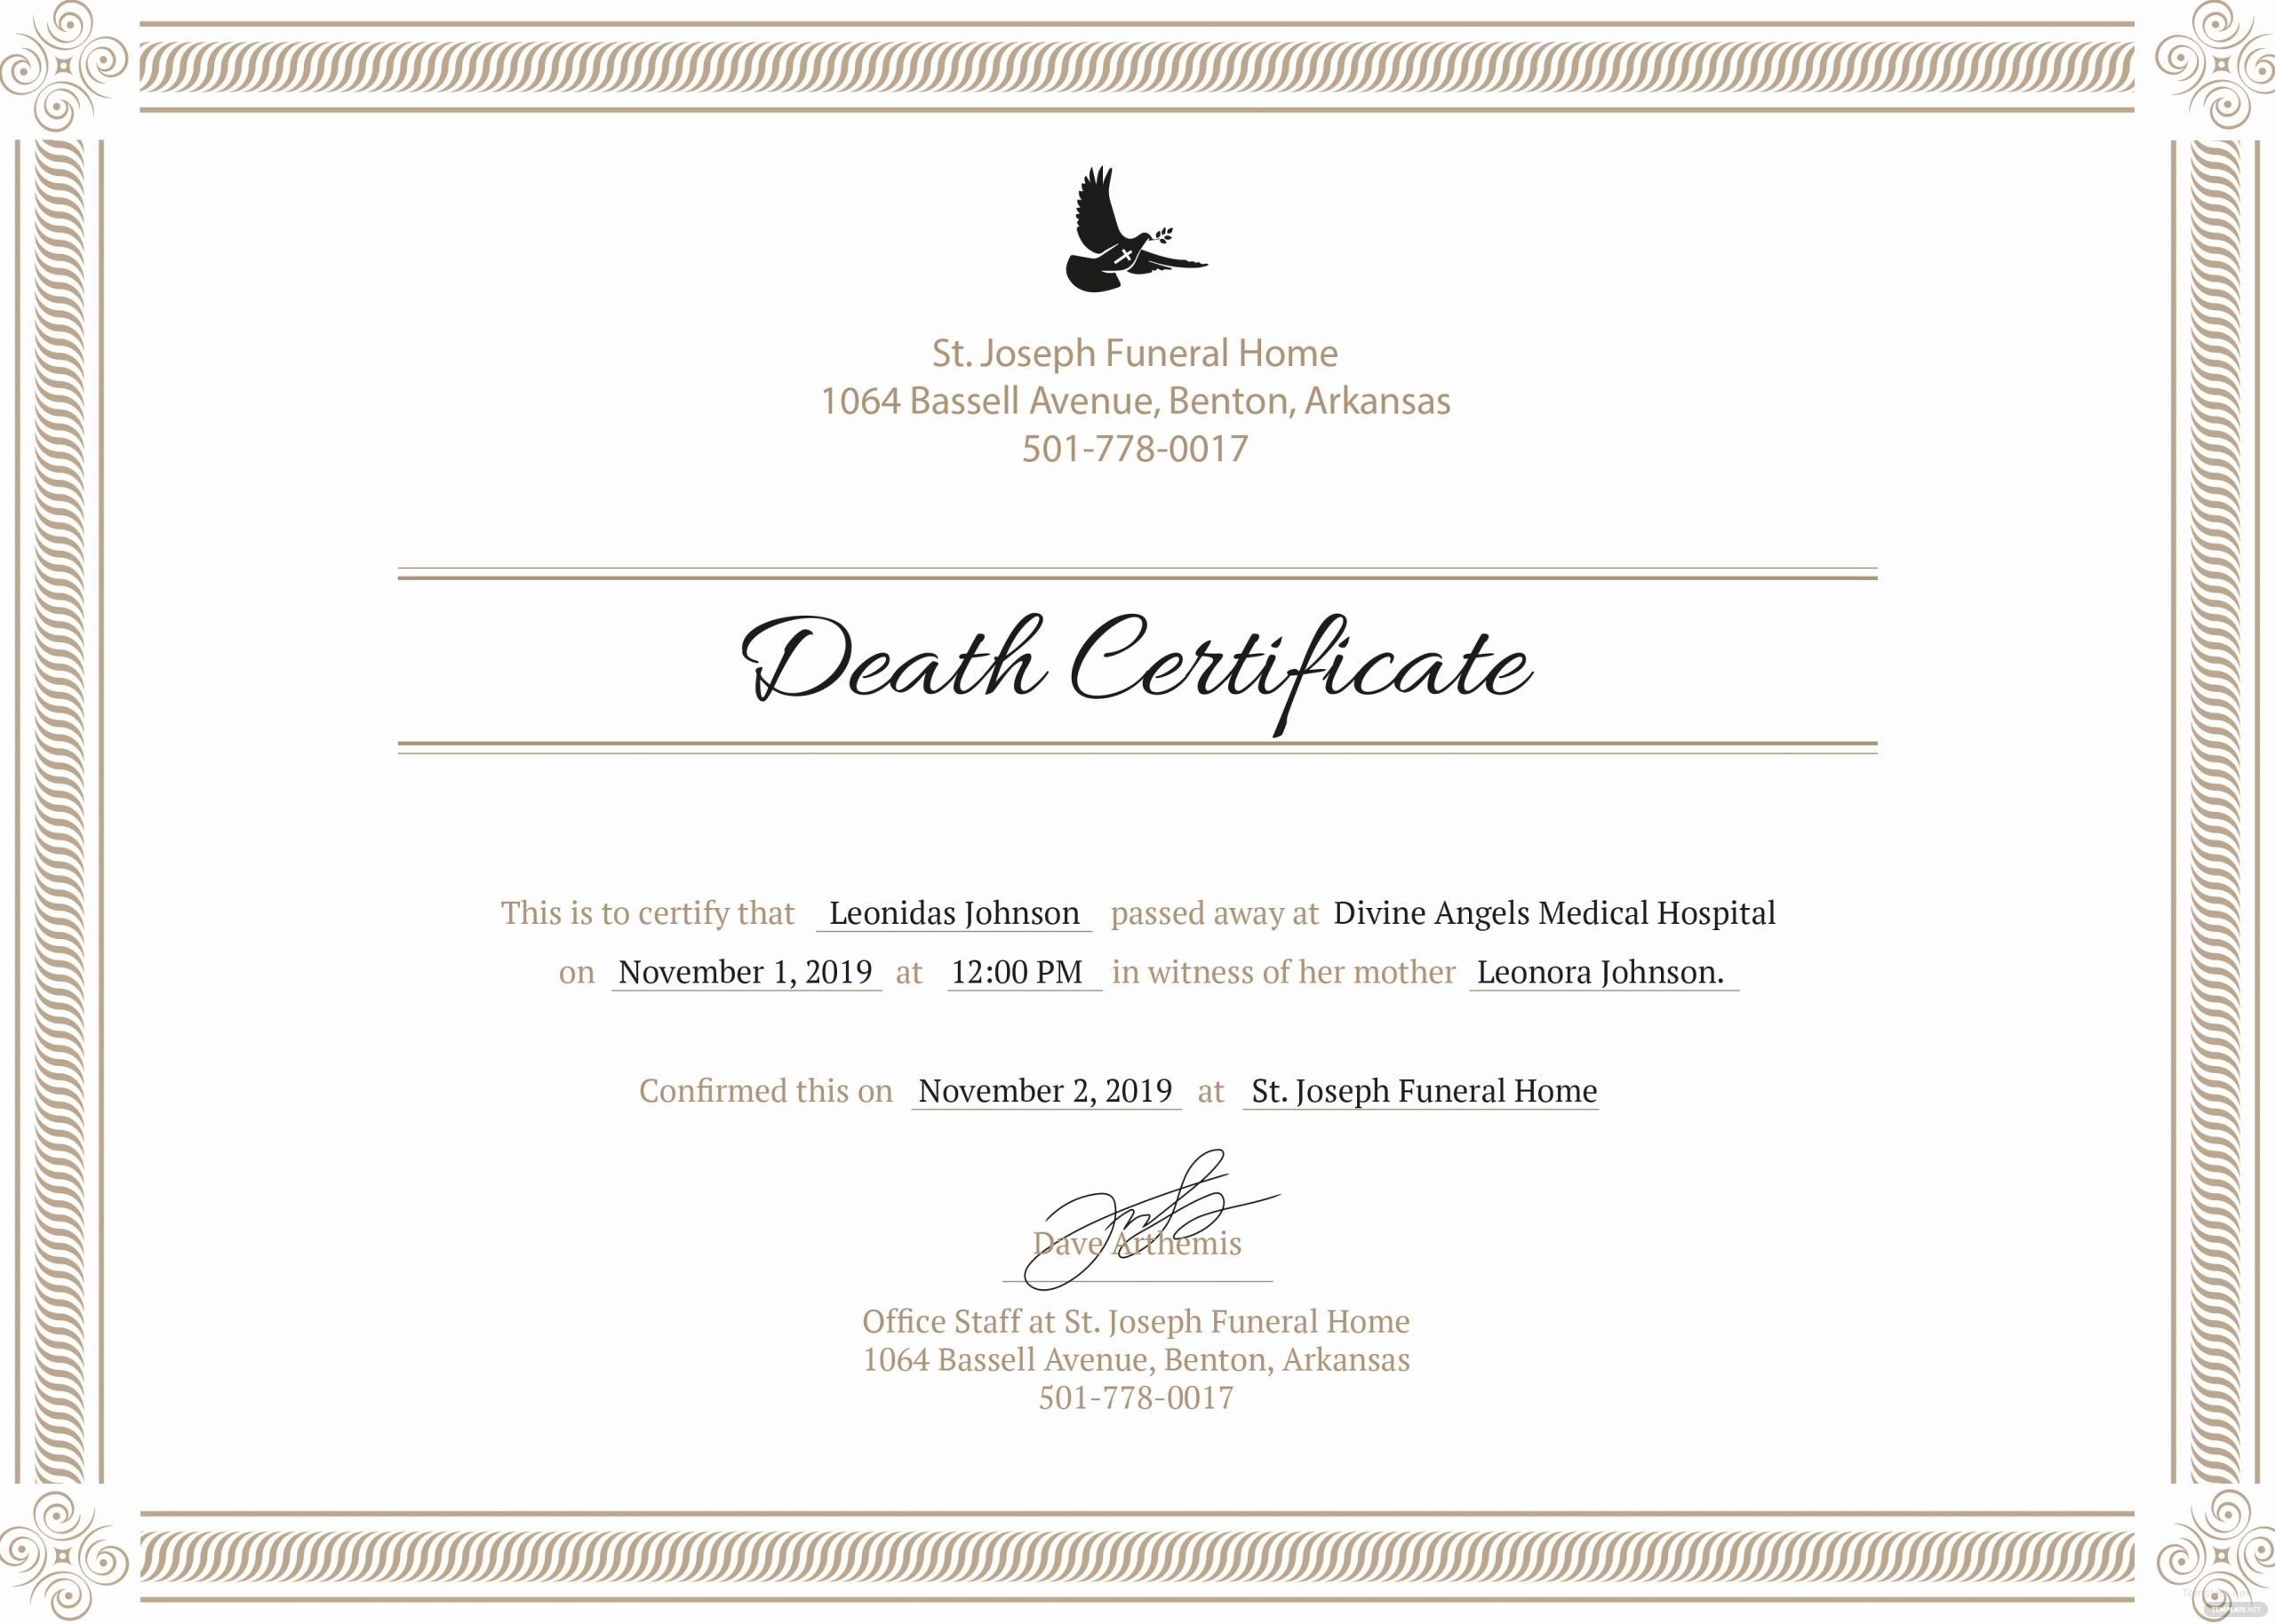 Certificate Of Death Template Awesome Free Death Certificate Template In Psd Ms Word Publisher